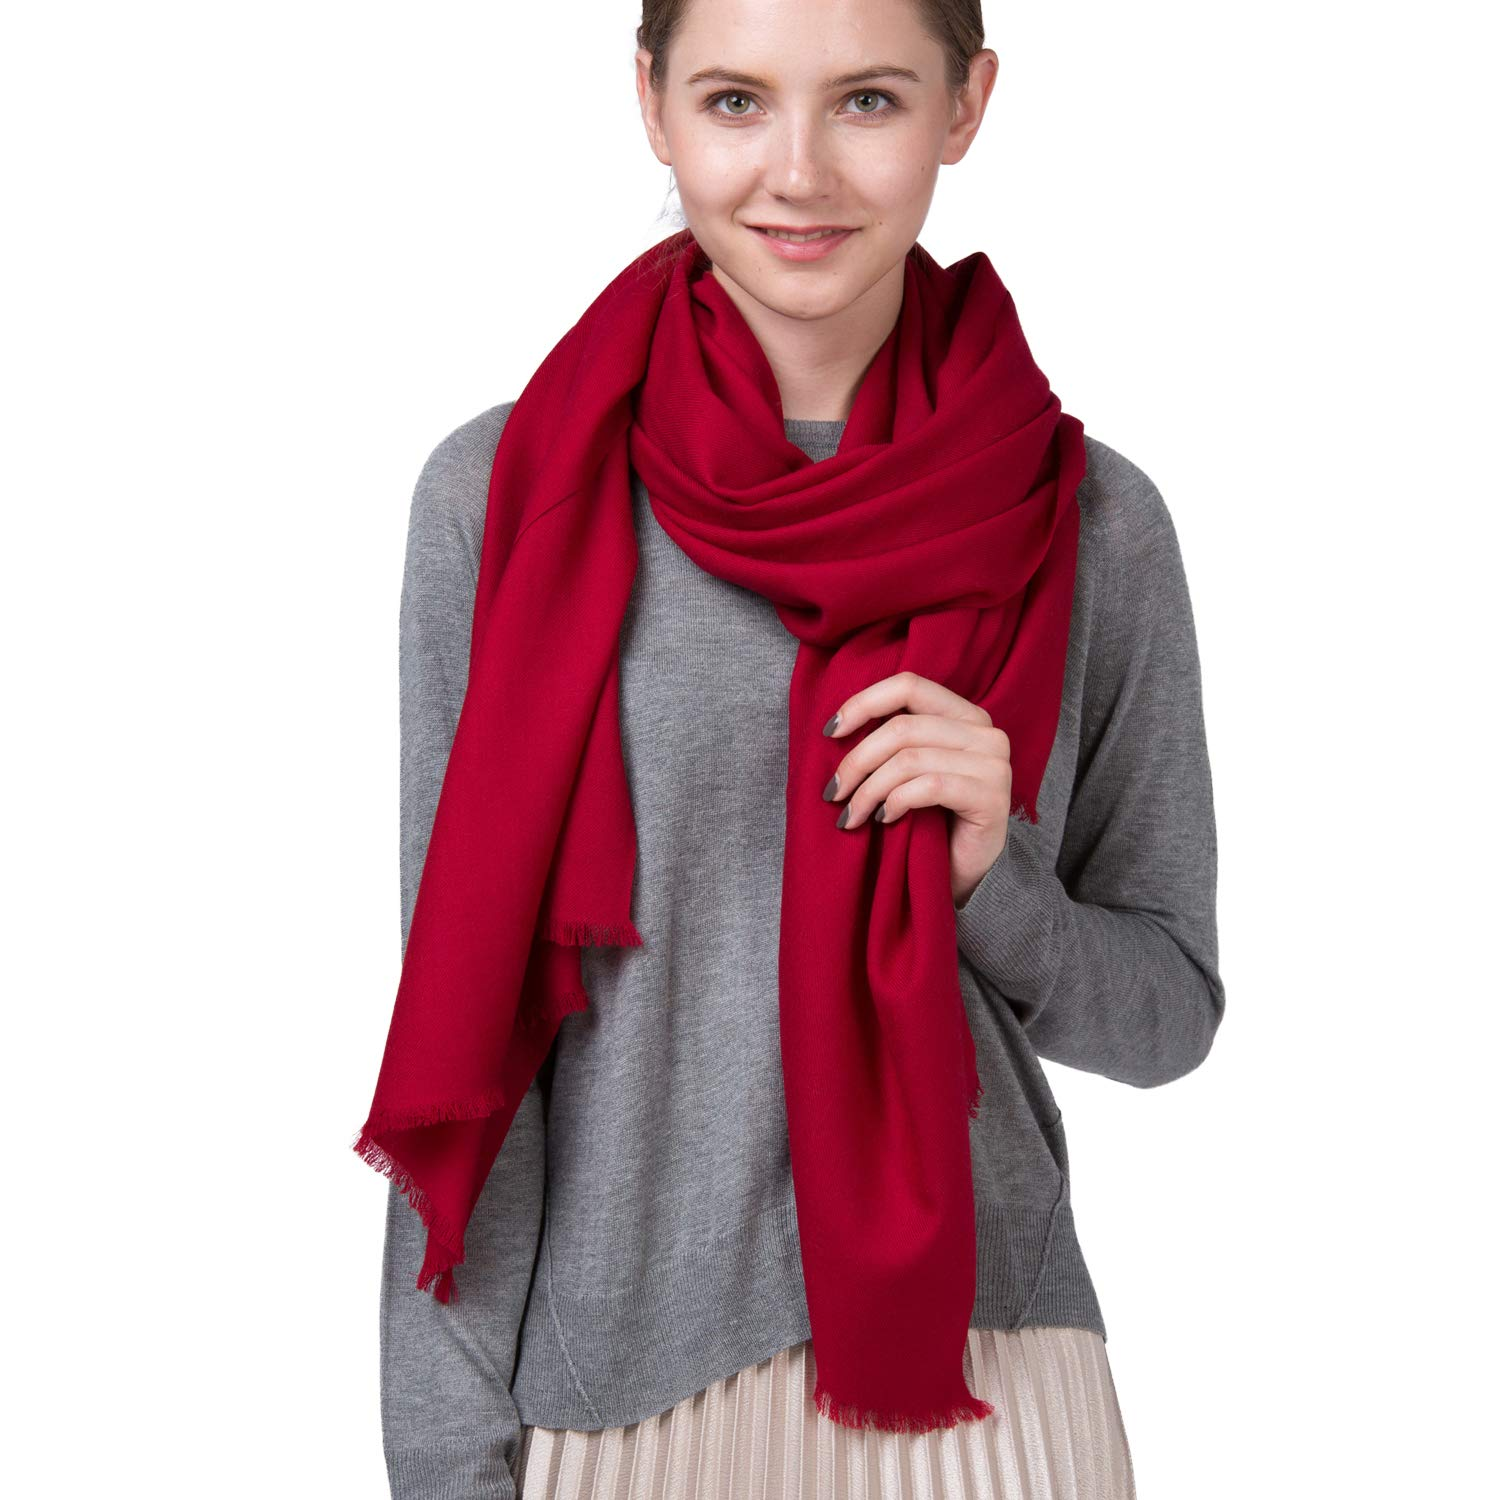 Vemiss 100% Wool Scarf Long Shawl Twill Thin and Soft Fall Winter New Style for Women(Wine red)